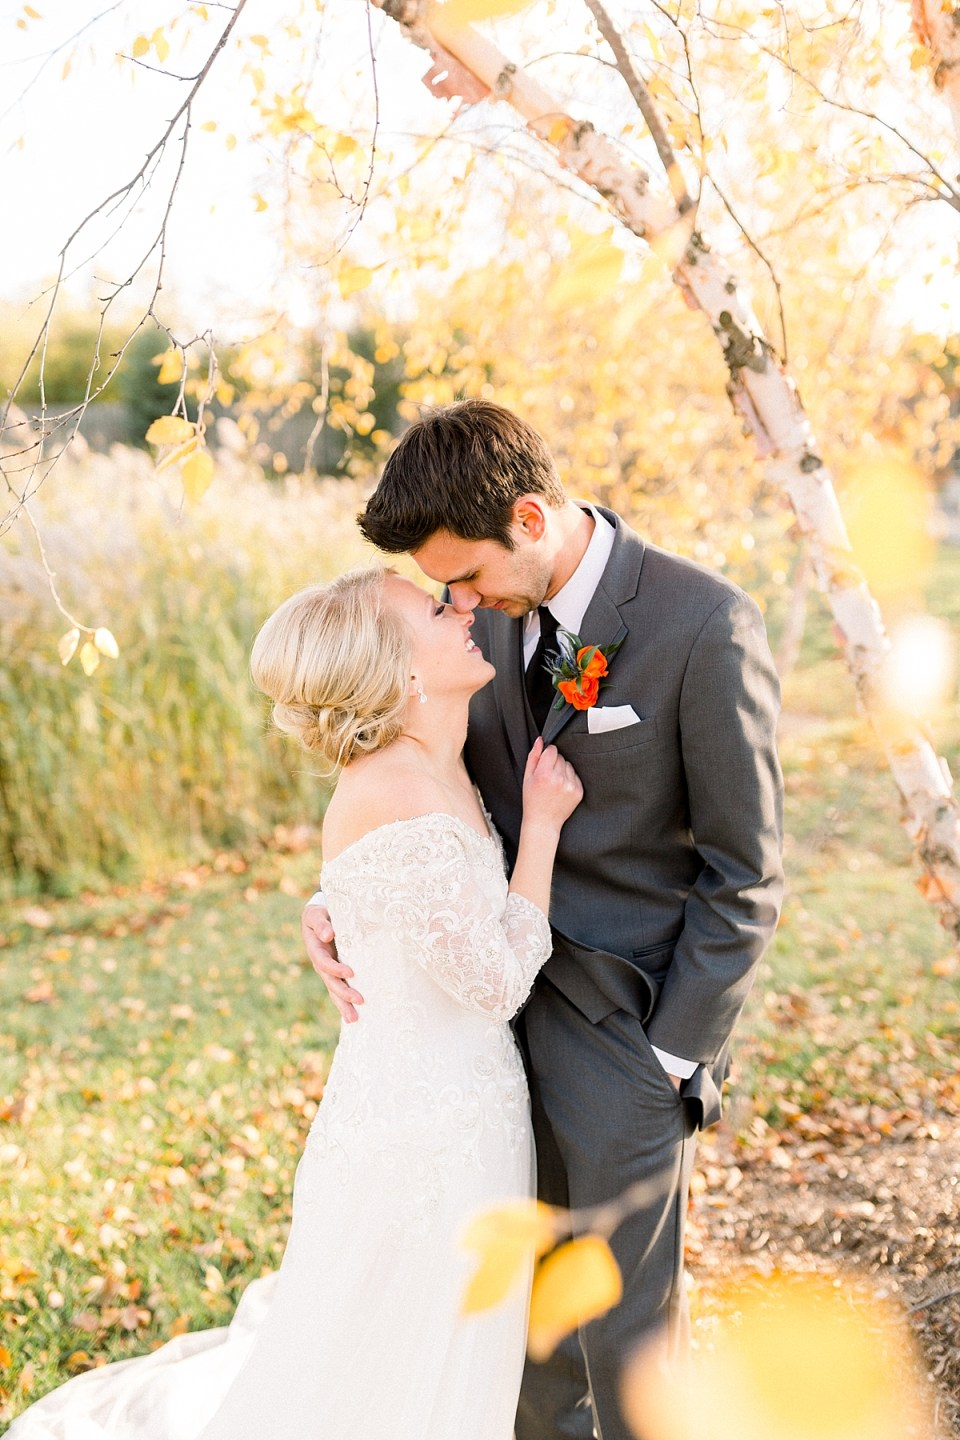 Arielle Peters Photography | Bride and groom smiling at each other outside under trees on fall wedding day.